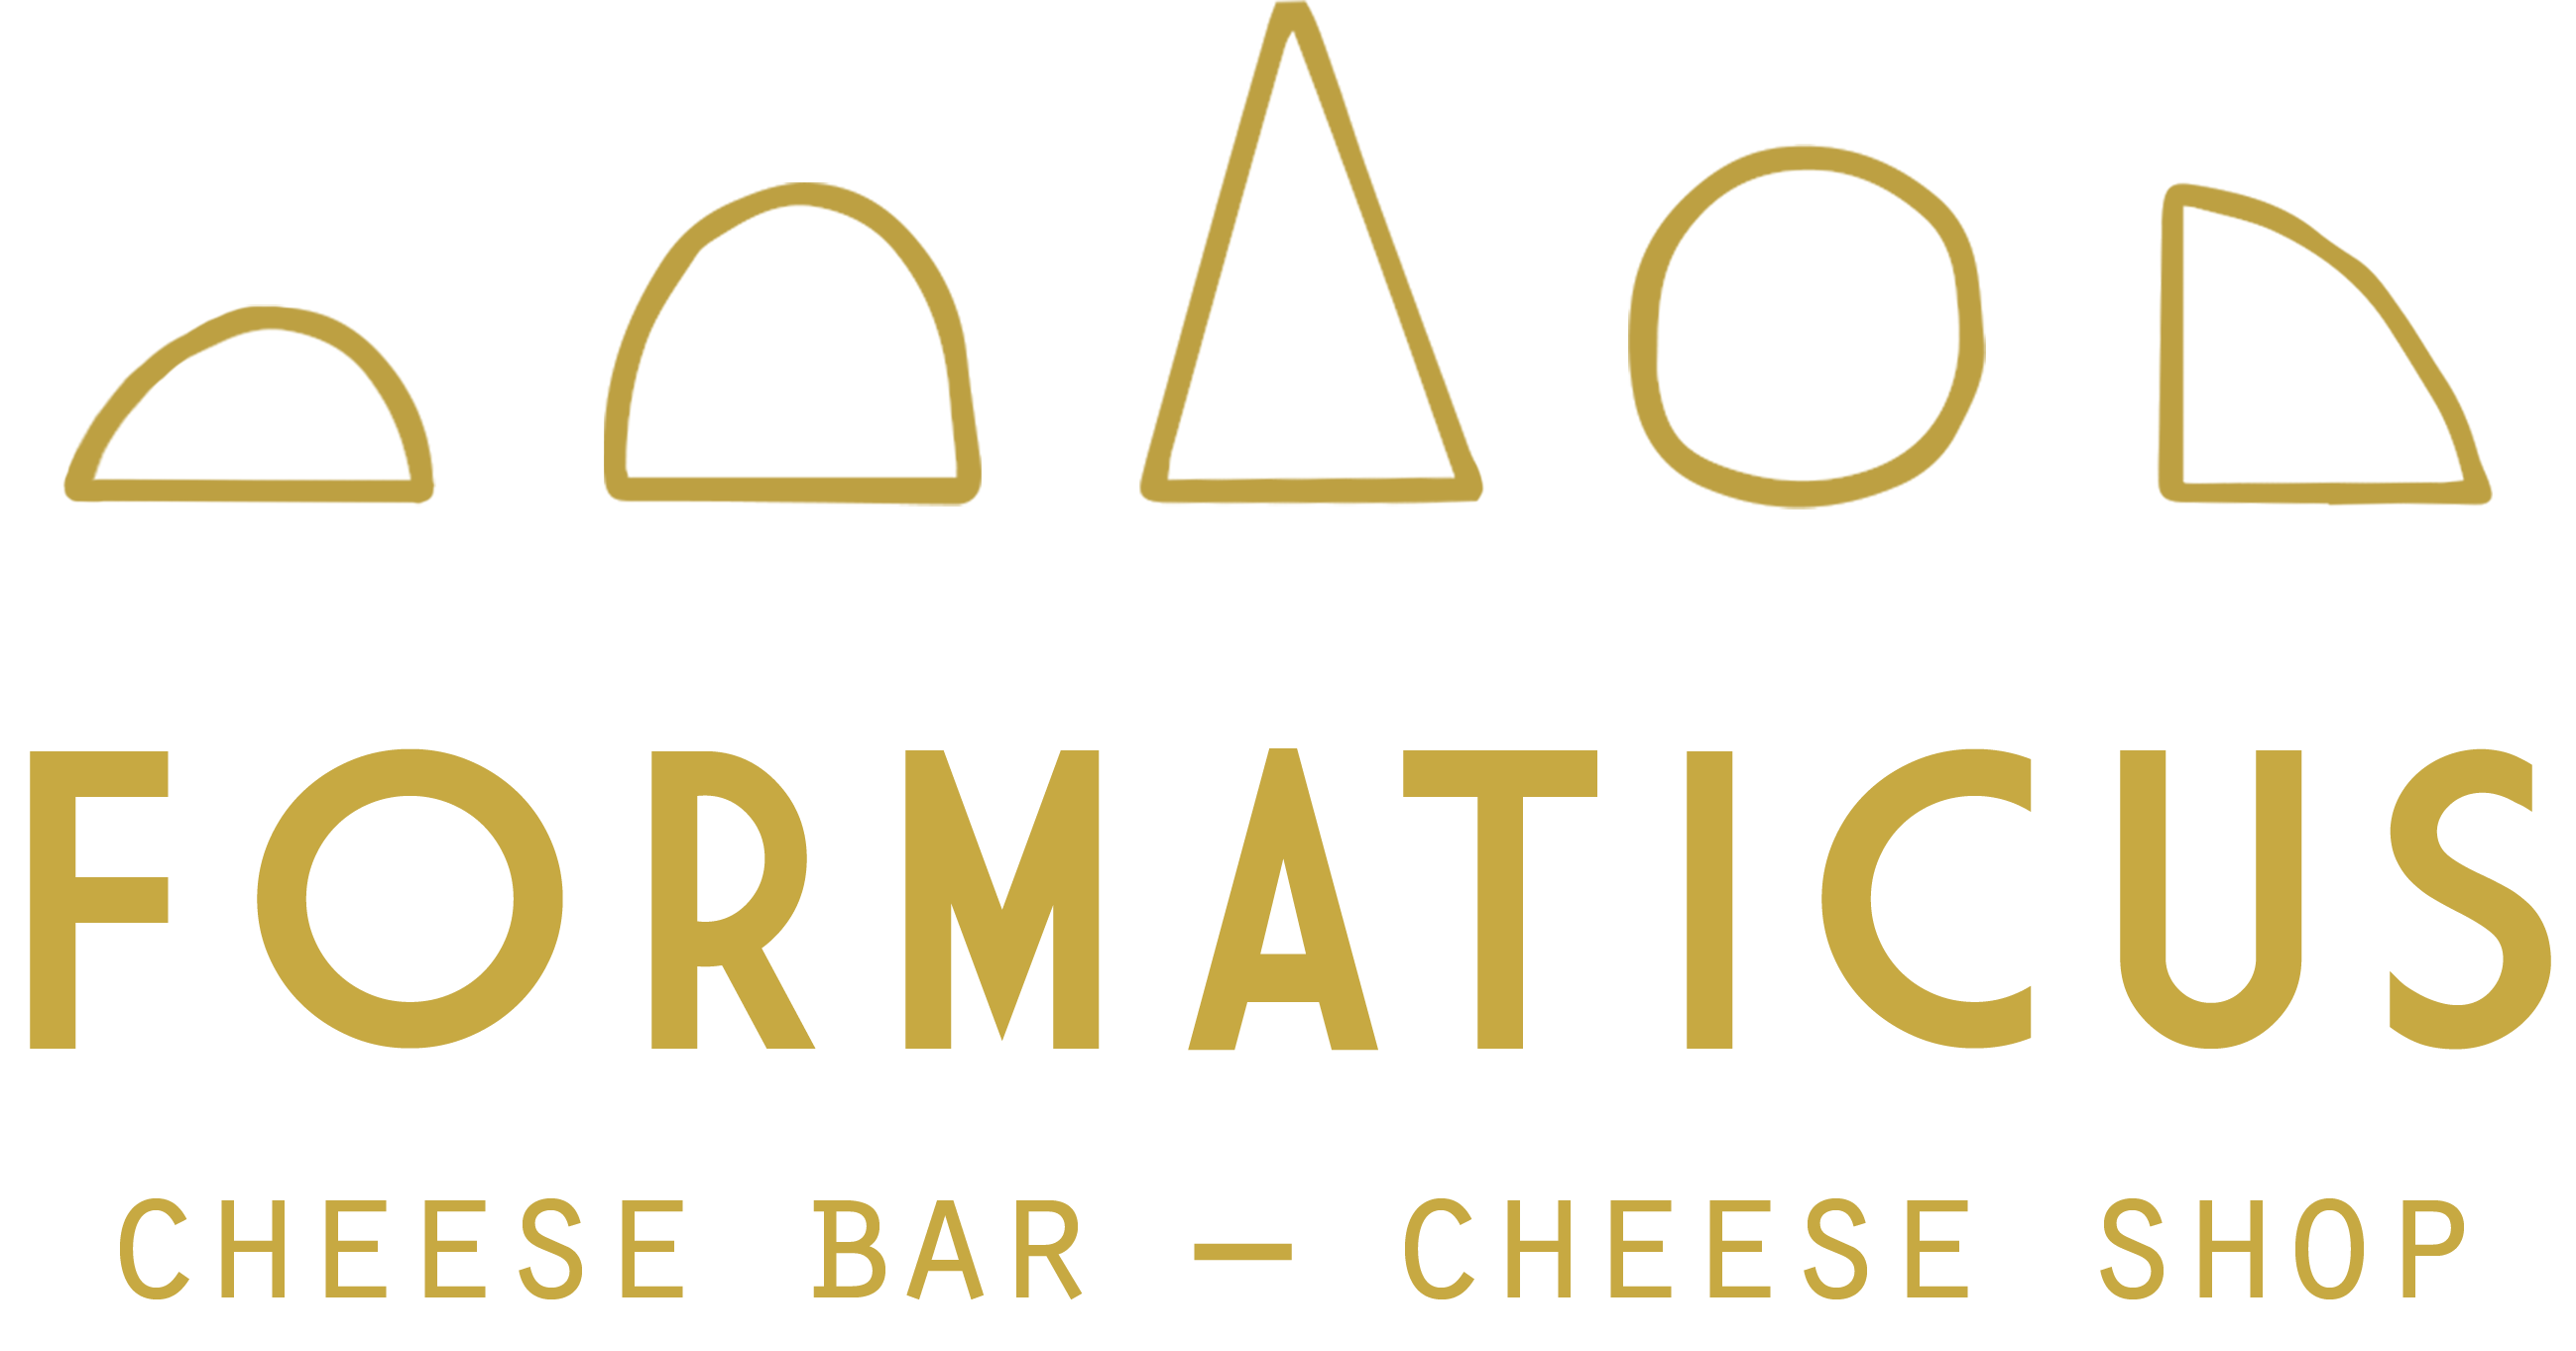 Formaticus - Cheese bar - Cheese shop